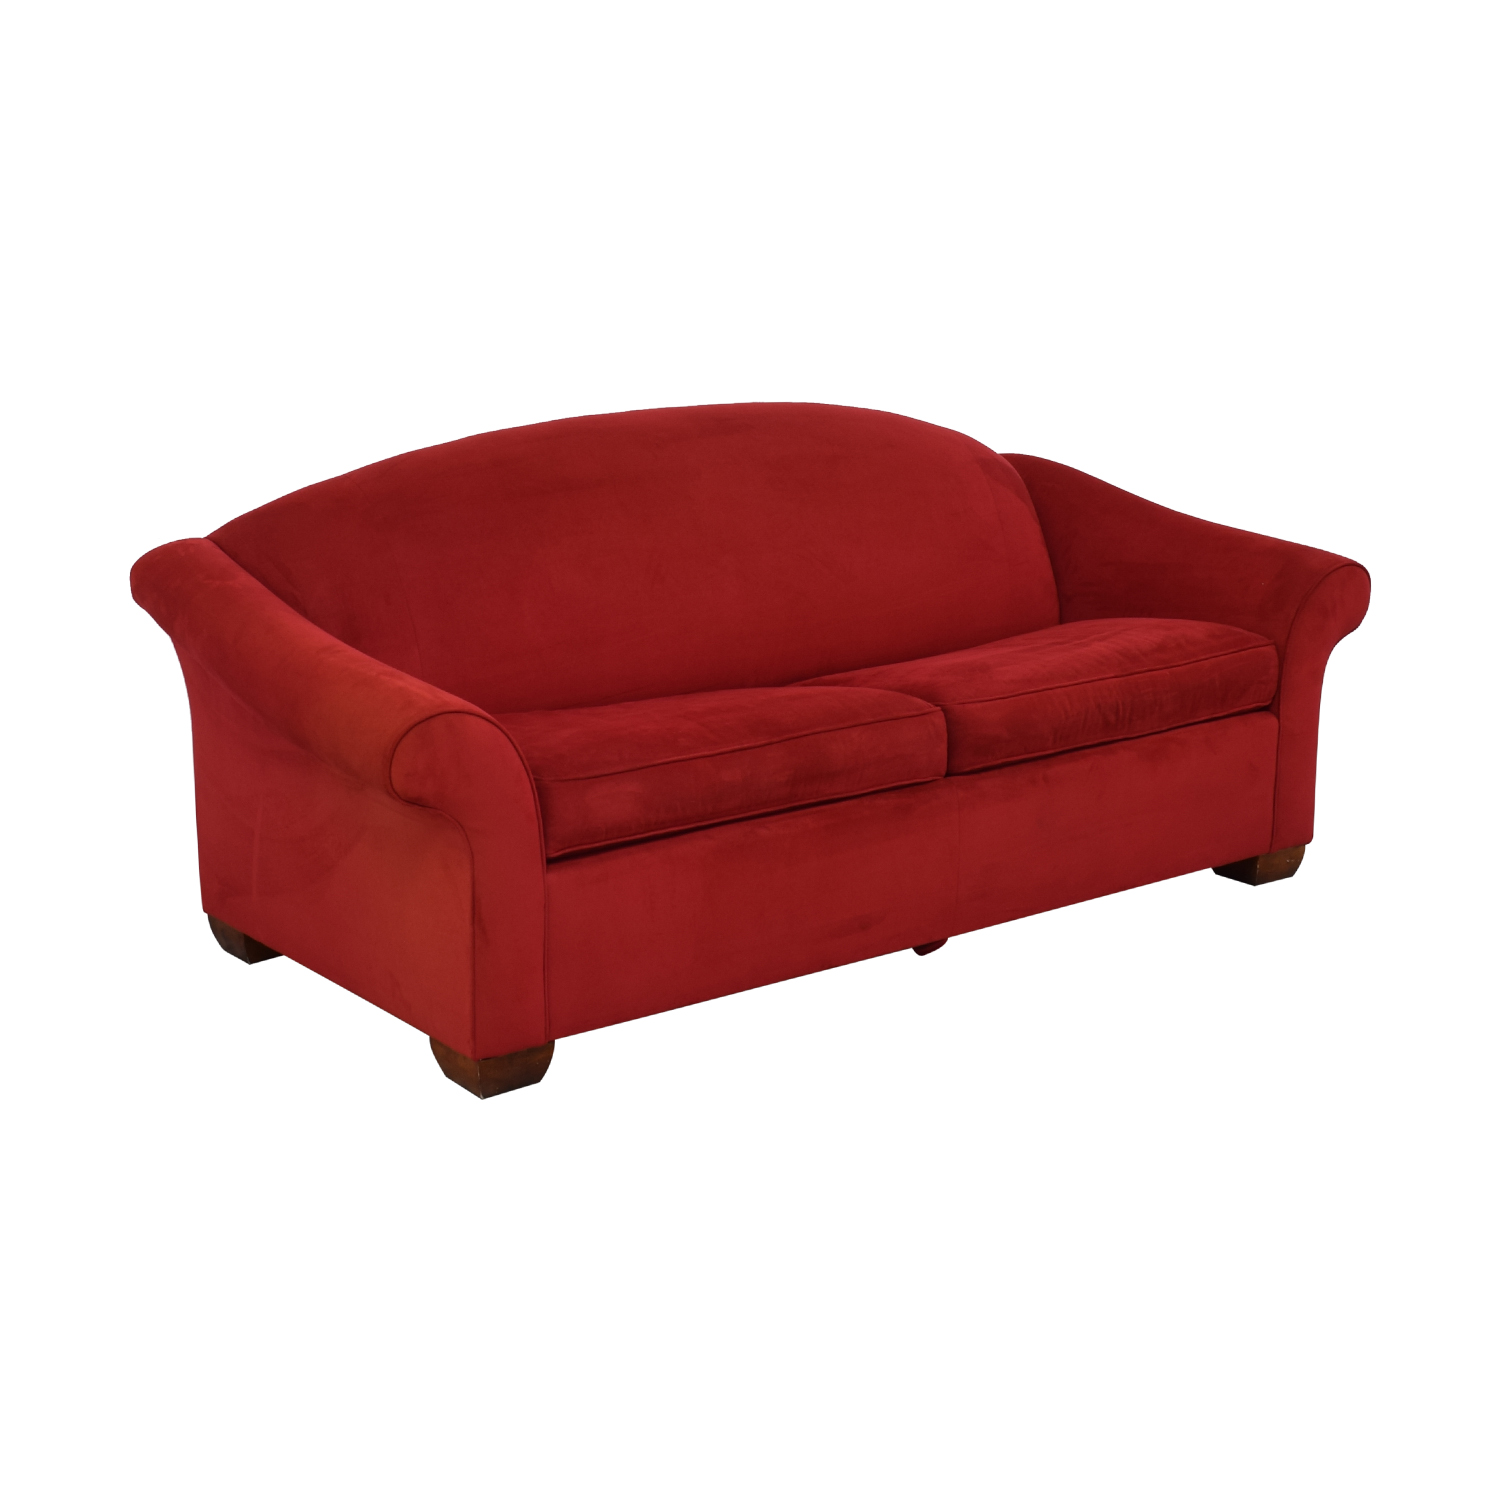 Kravet Kravet Red Sleeper Sofa coupon